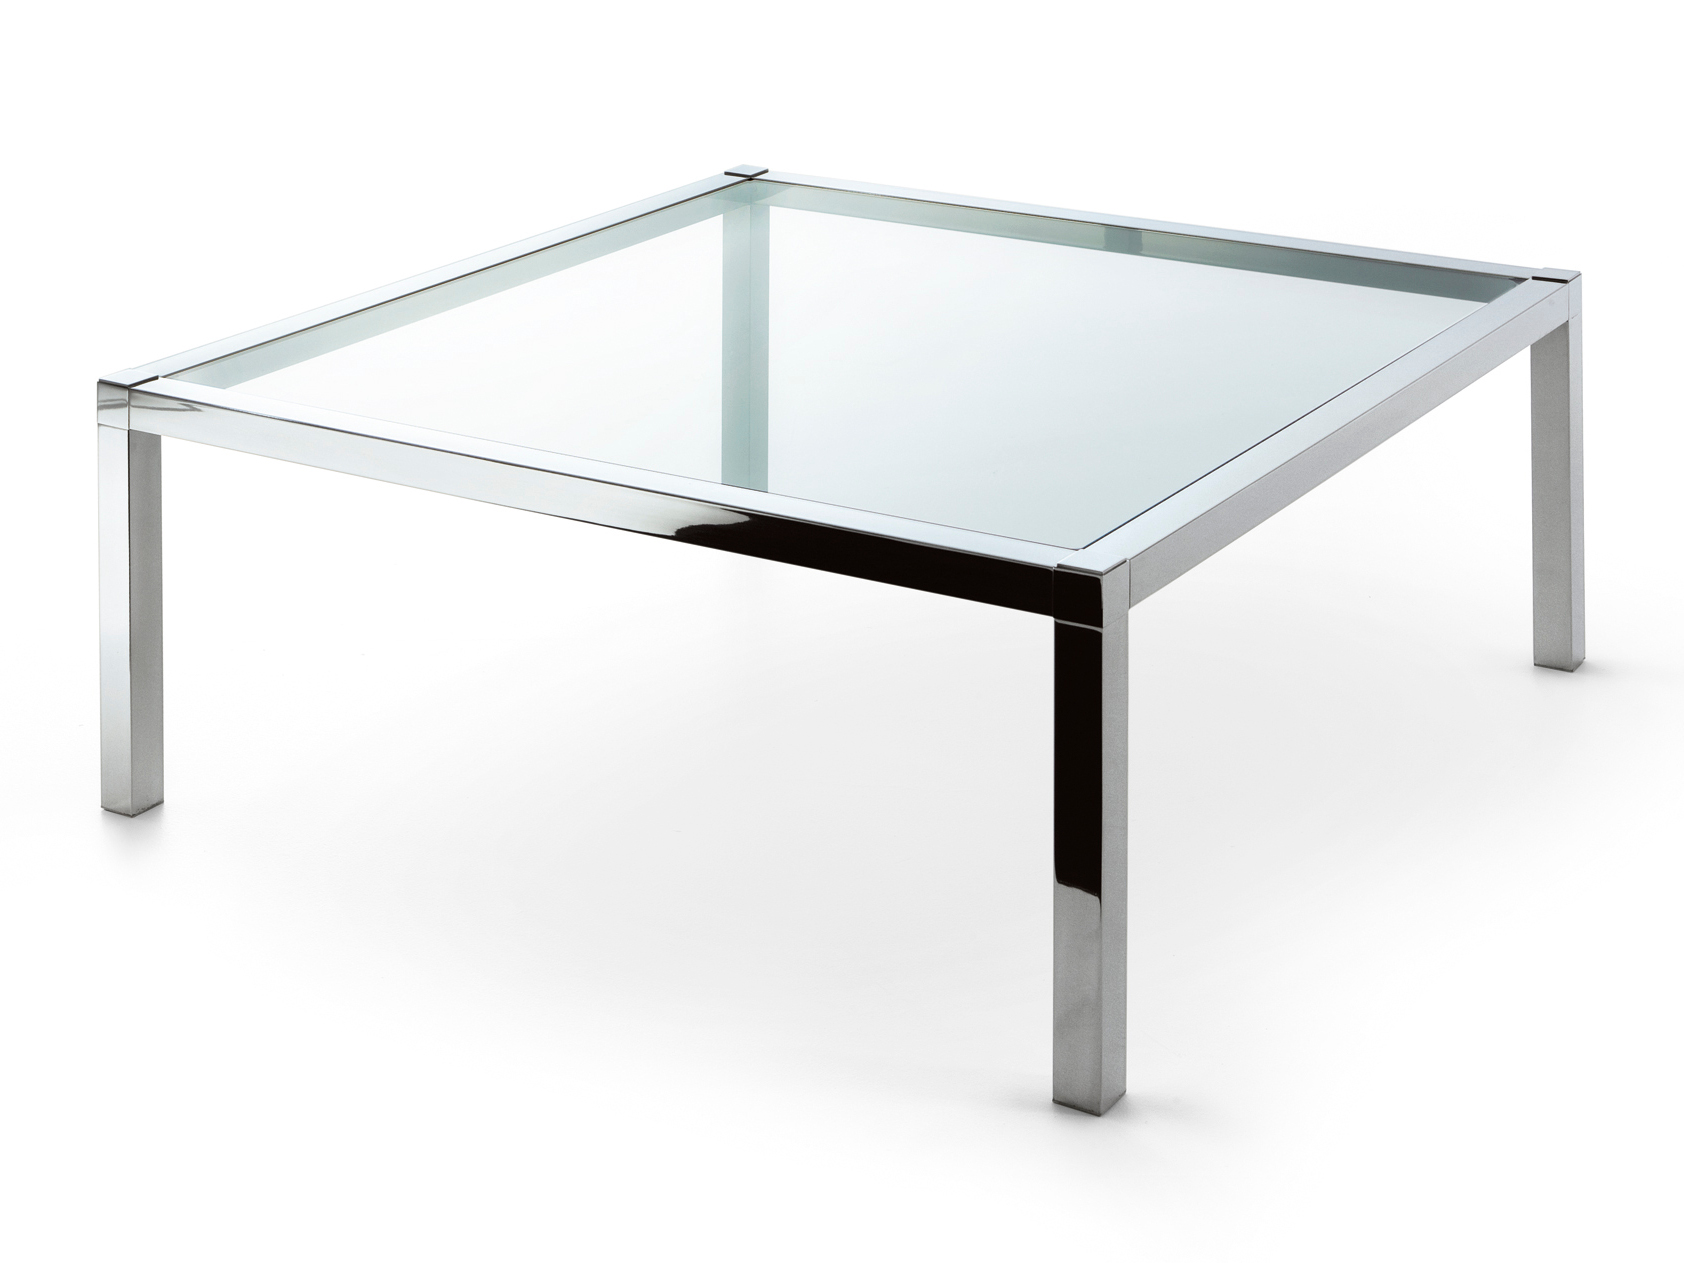 Square Crystal Coffee Table Grant Major By Gallotti Radice